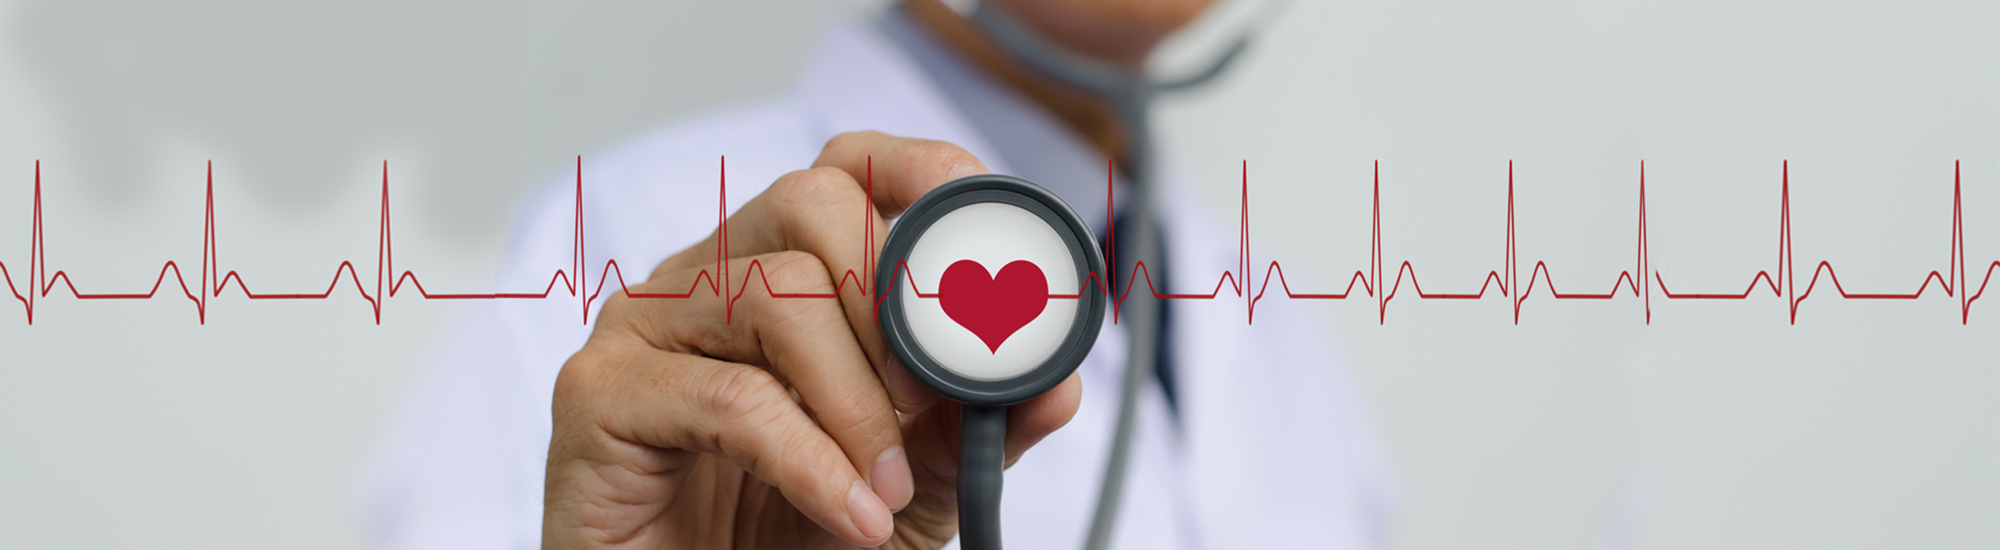 Ayurvedic treatment for Cardiology